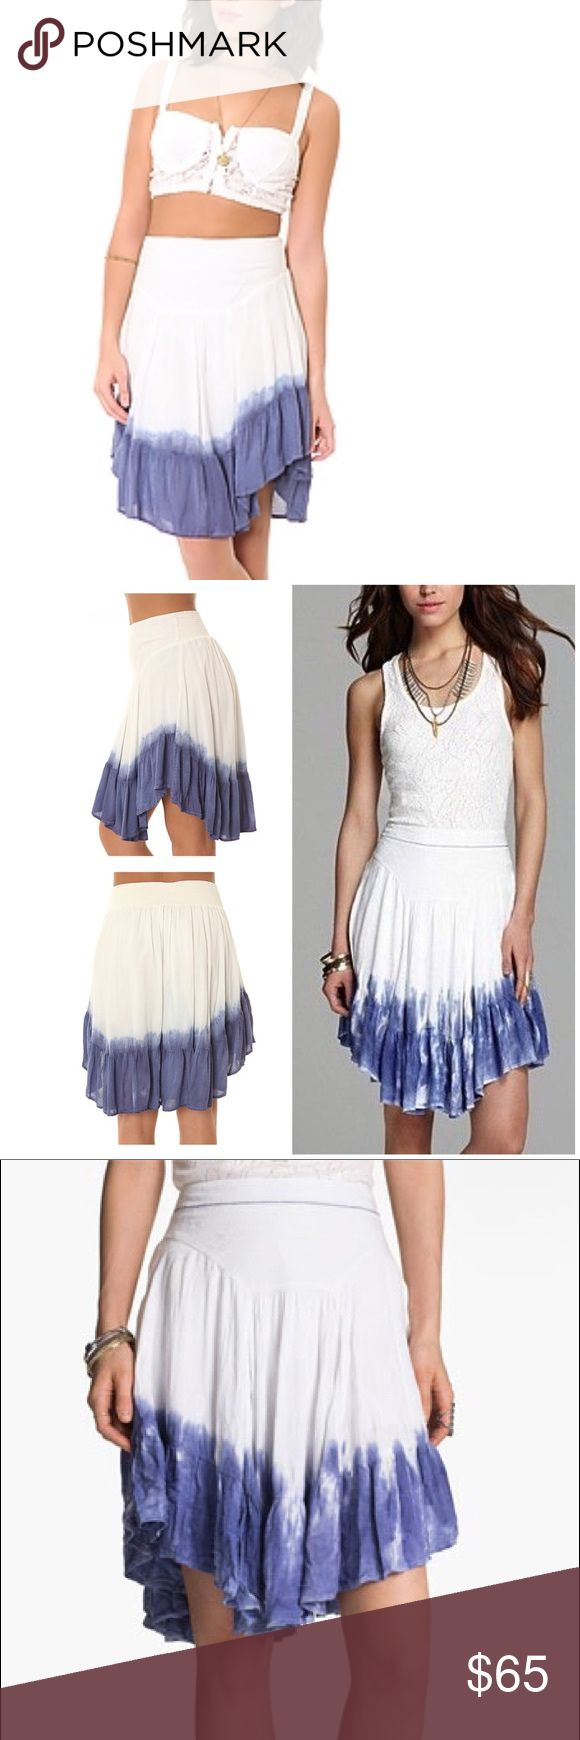 FREE PEOPLE Dip Dye Navy Ombré Skirt NEW XS FREE PEOPLE Dip Dye Navy White Ombré Skirt NEW SZ XS WOW!  MSRP $88 SOLD OUT! • Beautiful Asymmetrical Dip Dye Skirt with character for the bohemian you from the bohemian me! • Material is like soft gauzy textured cotton light and float Free People Skirts Midi